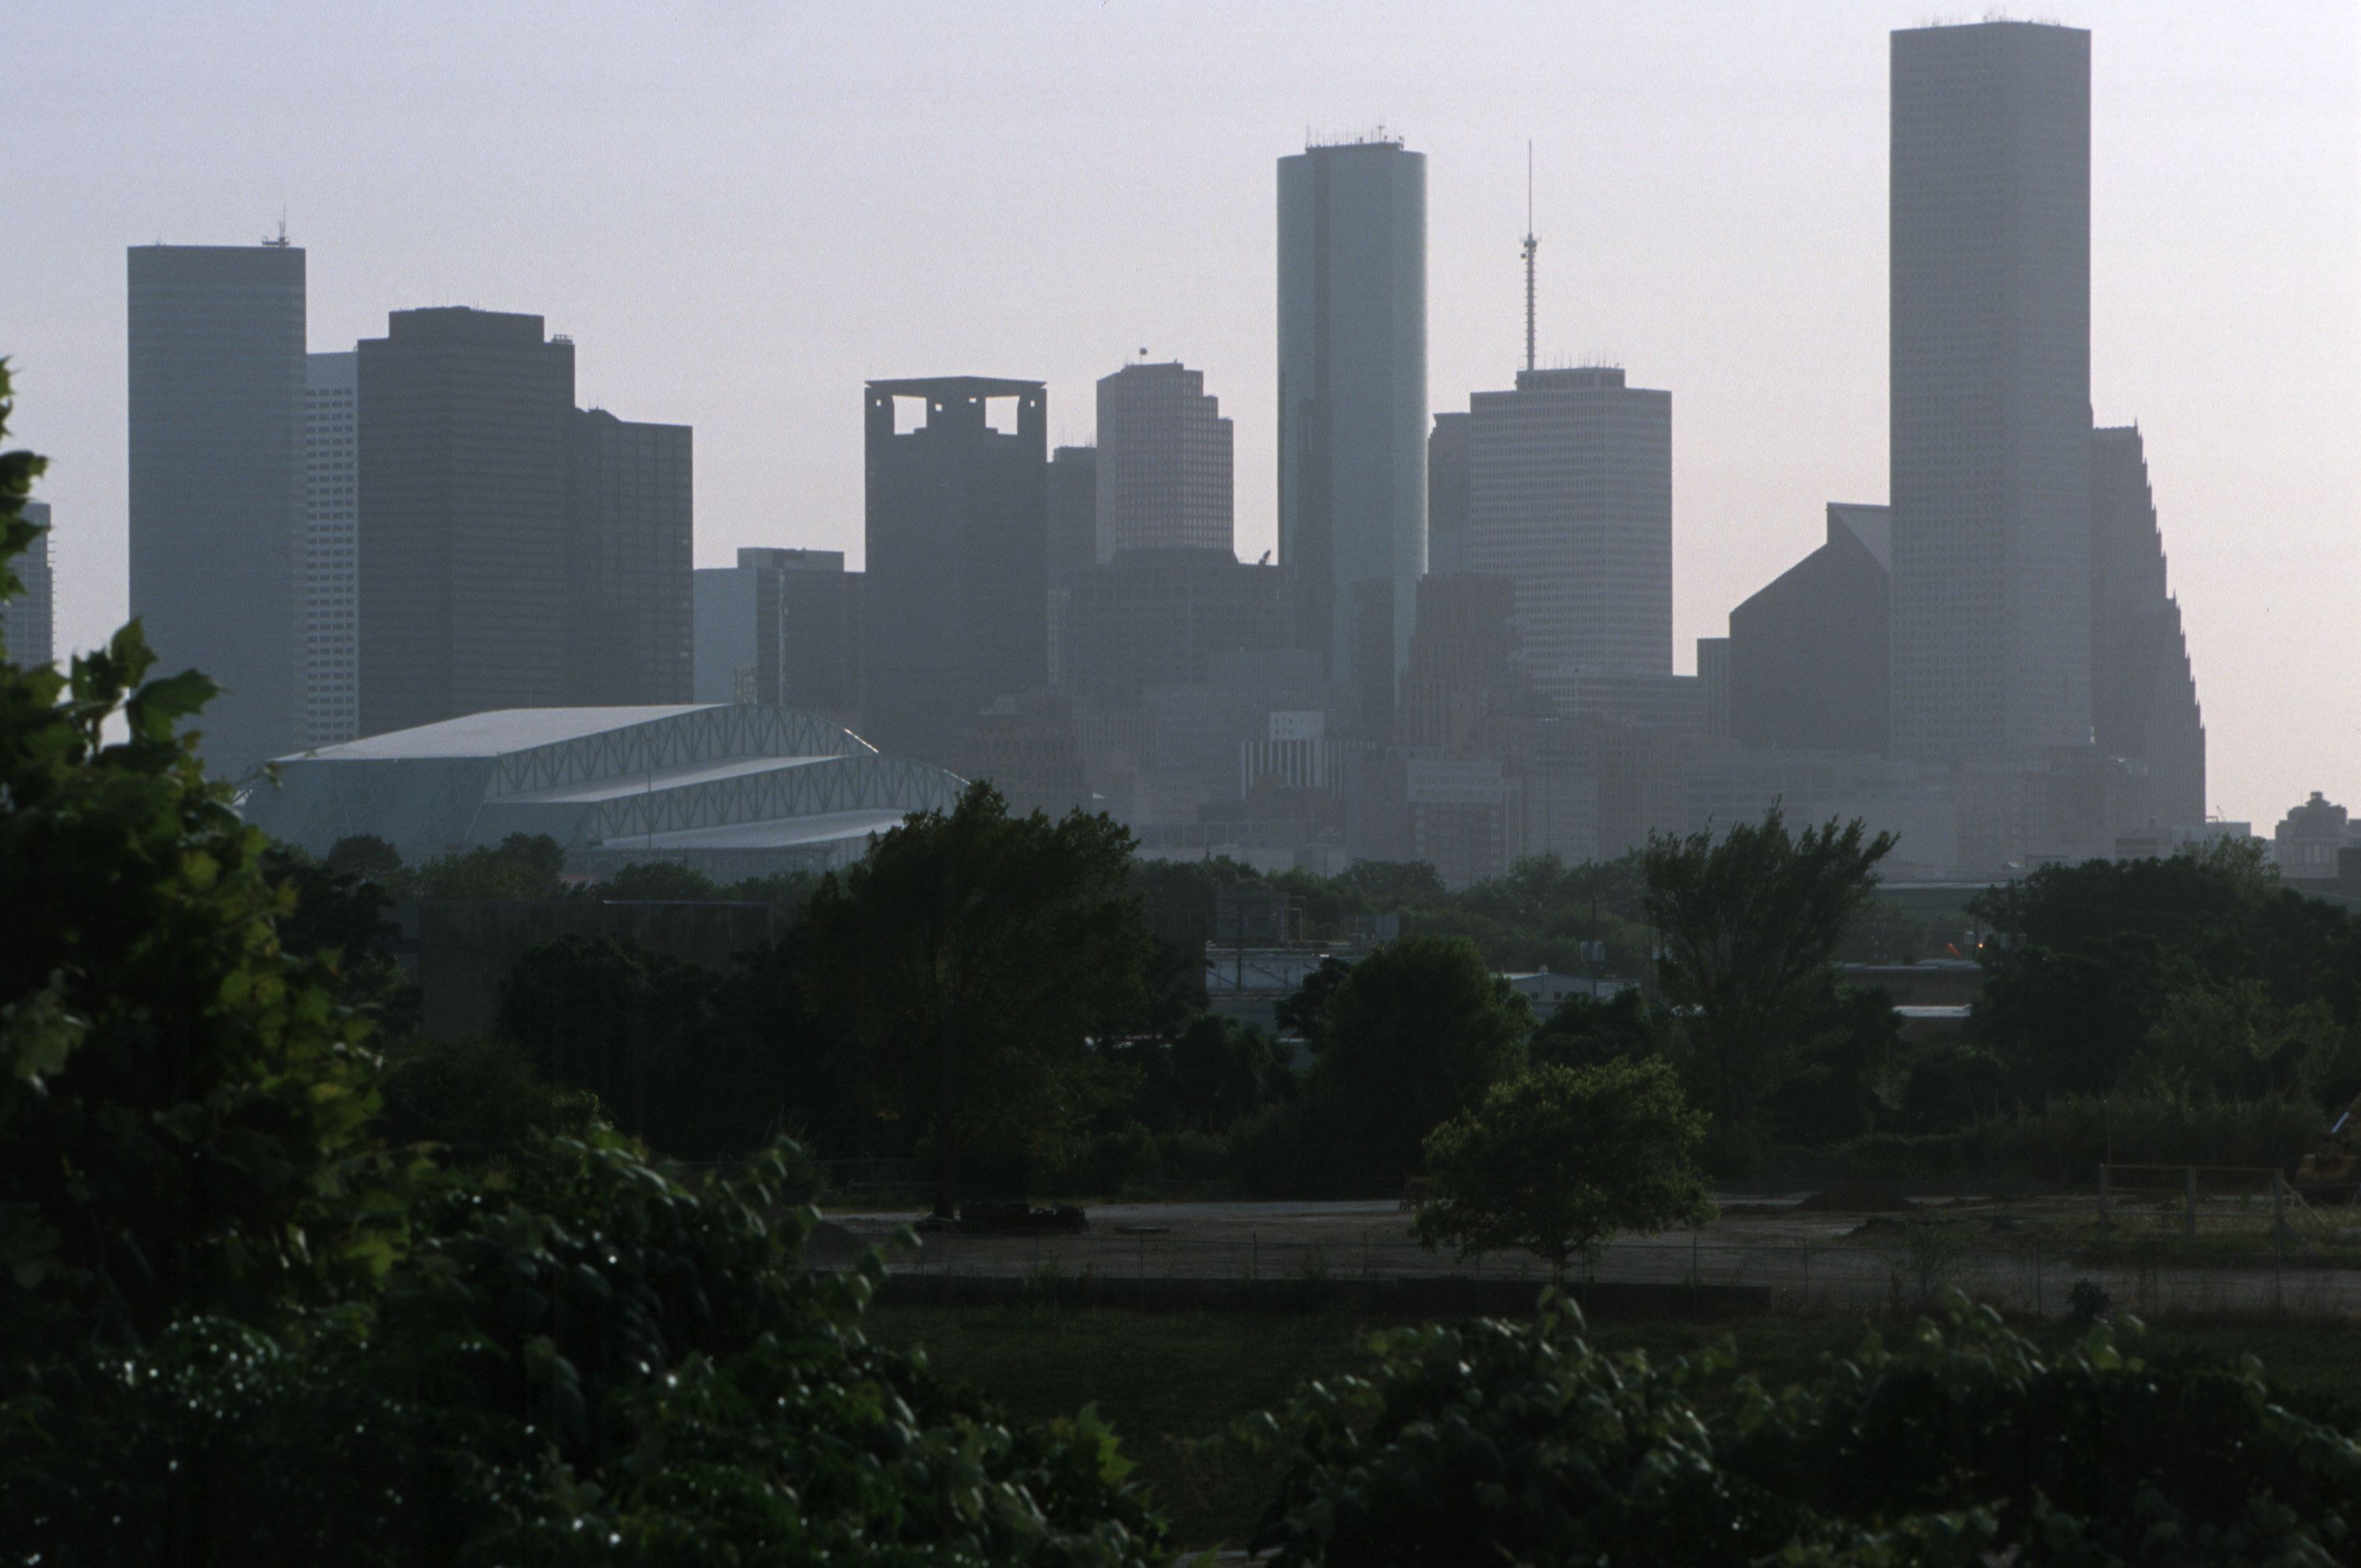 371682 01: Hazy smog blankets Houston, TX, June 26, 2000 during a hot summer day. According to the group Texas PEER, air quality in Texas has worsened significantly under Gov. George W. Bush's administration. The Houston-Galveston area has had eight of the top ten ozone (smog) peaks in the nation, far surpassing Los Angeles. PEER accuses Bush of choosing to bypass clean air regulations rather than enforce them. When research showed that 1,000 unregulated 'grandfathered' industrial plants accounted for a huge proportion of Texas air pollution, Bush opposed legislation that would force the companies to clean up, instead choosing to offer a 'voluntary' program. The heads of these companies include some of Bush's largest campaign contributors, says the Texas PEER group. (Photo by Joe Raedle/Newsmakers)